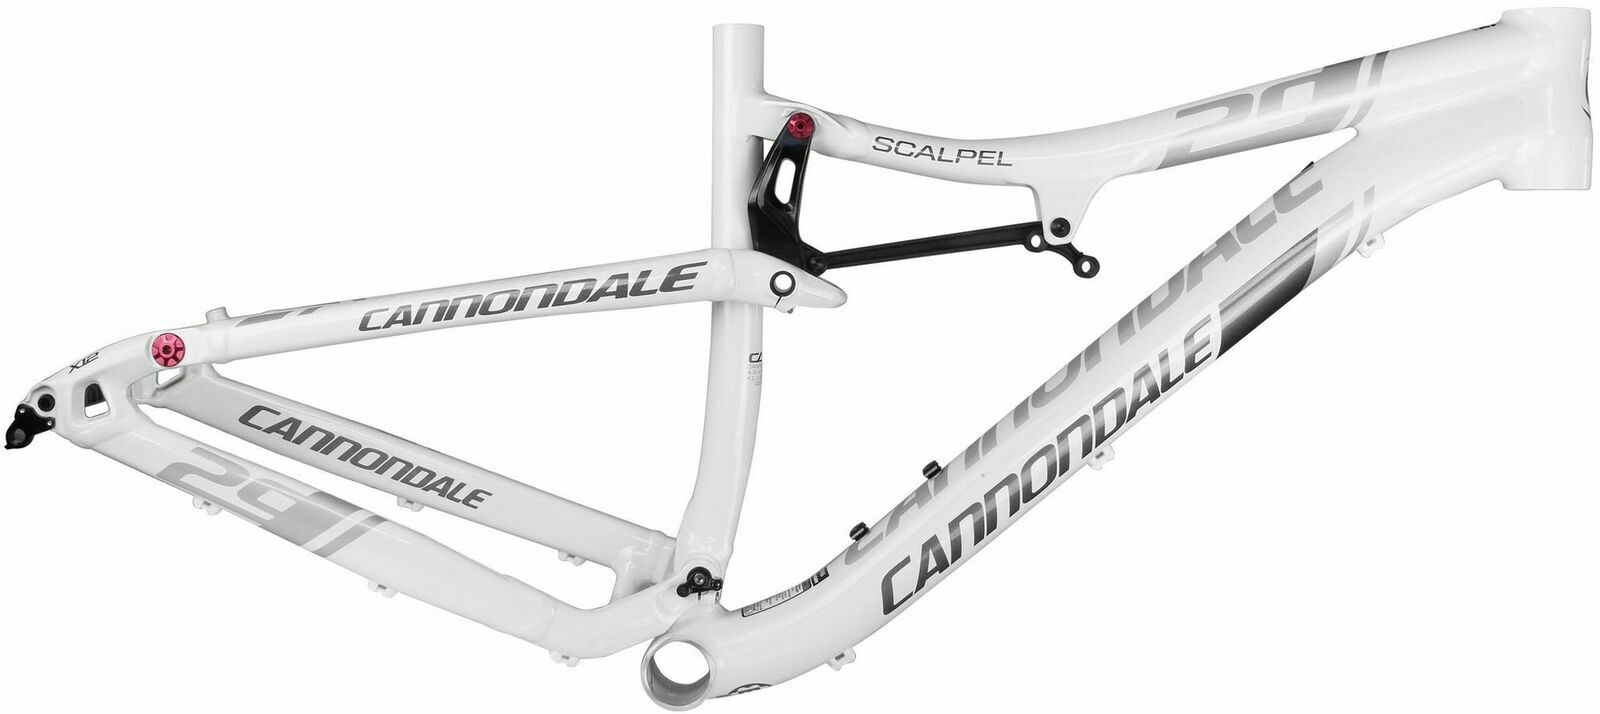 Cannondale Scalpel 29er ALLOY Mountain Bicycle Frame White Size M